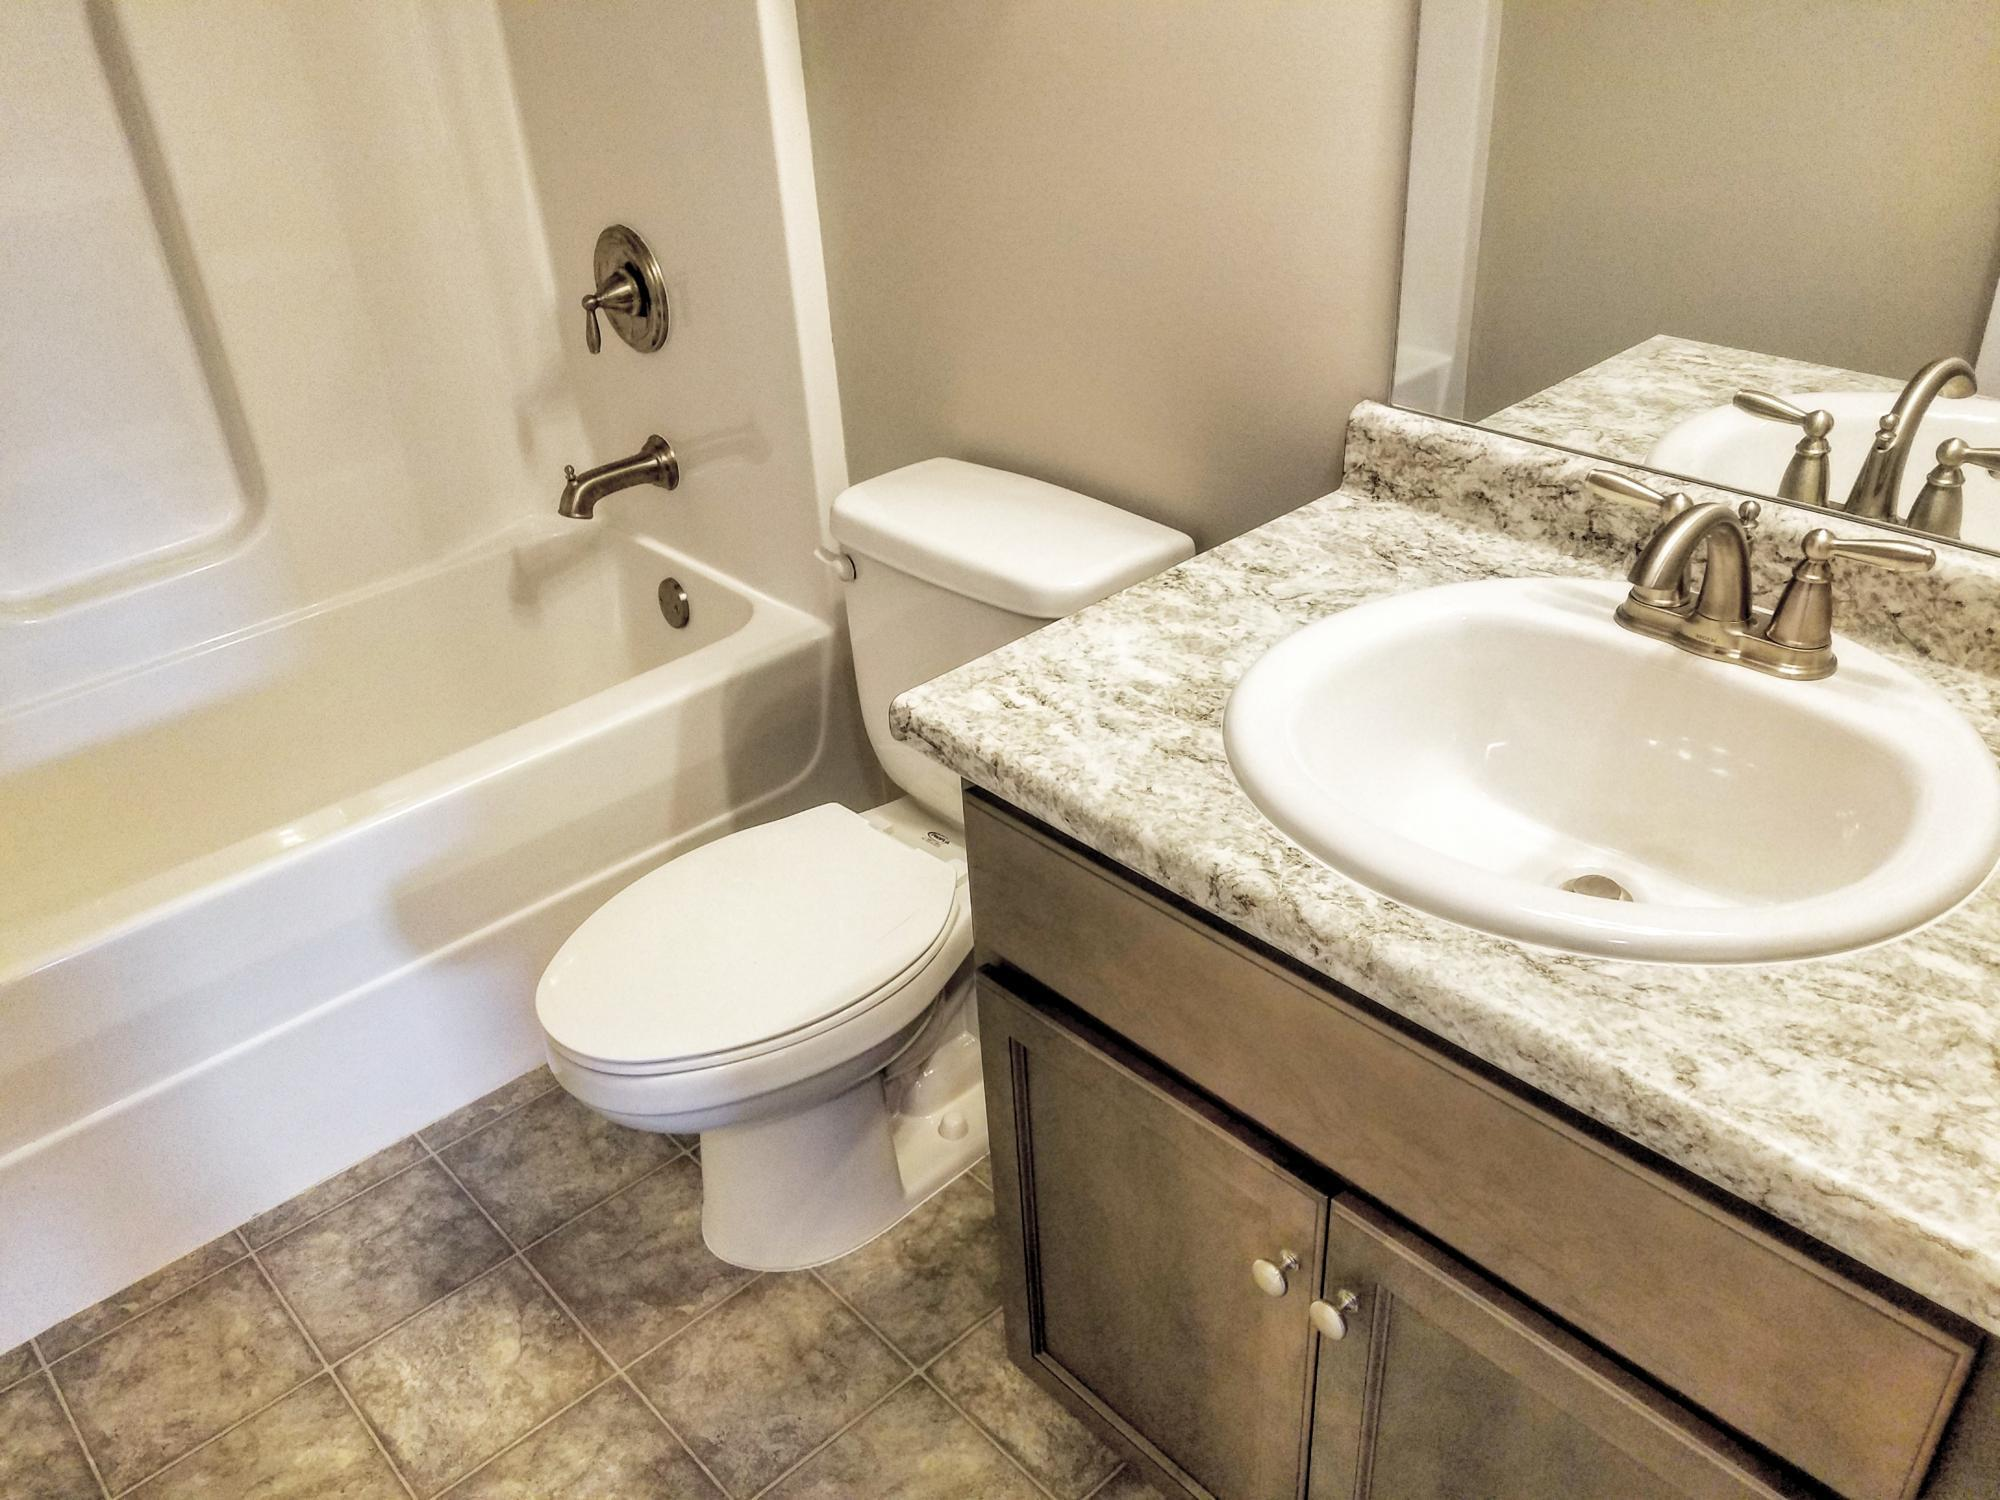 Bathroom featured in the Franklin By Konter Quality Homes in Savannah, GA